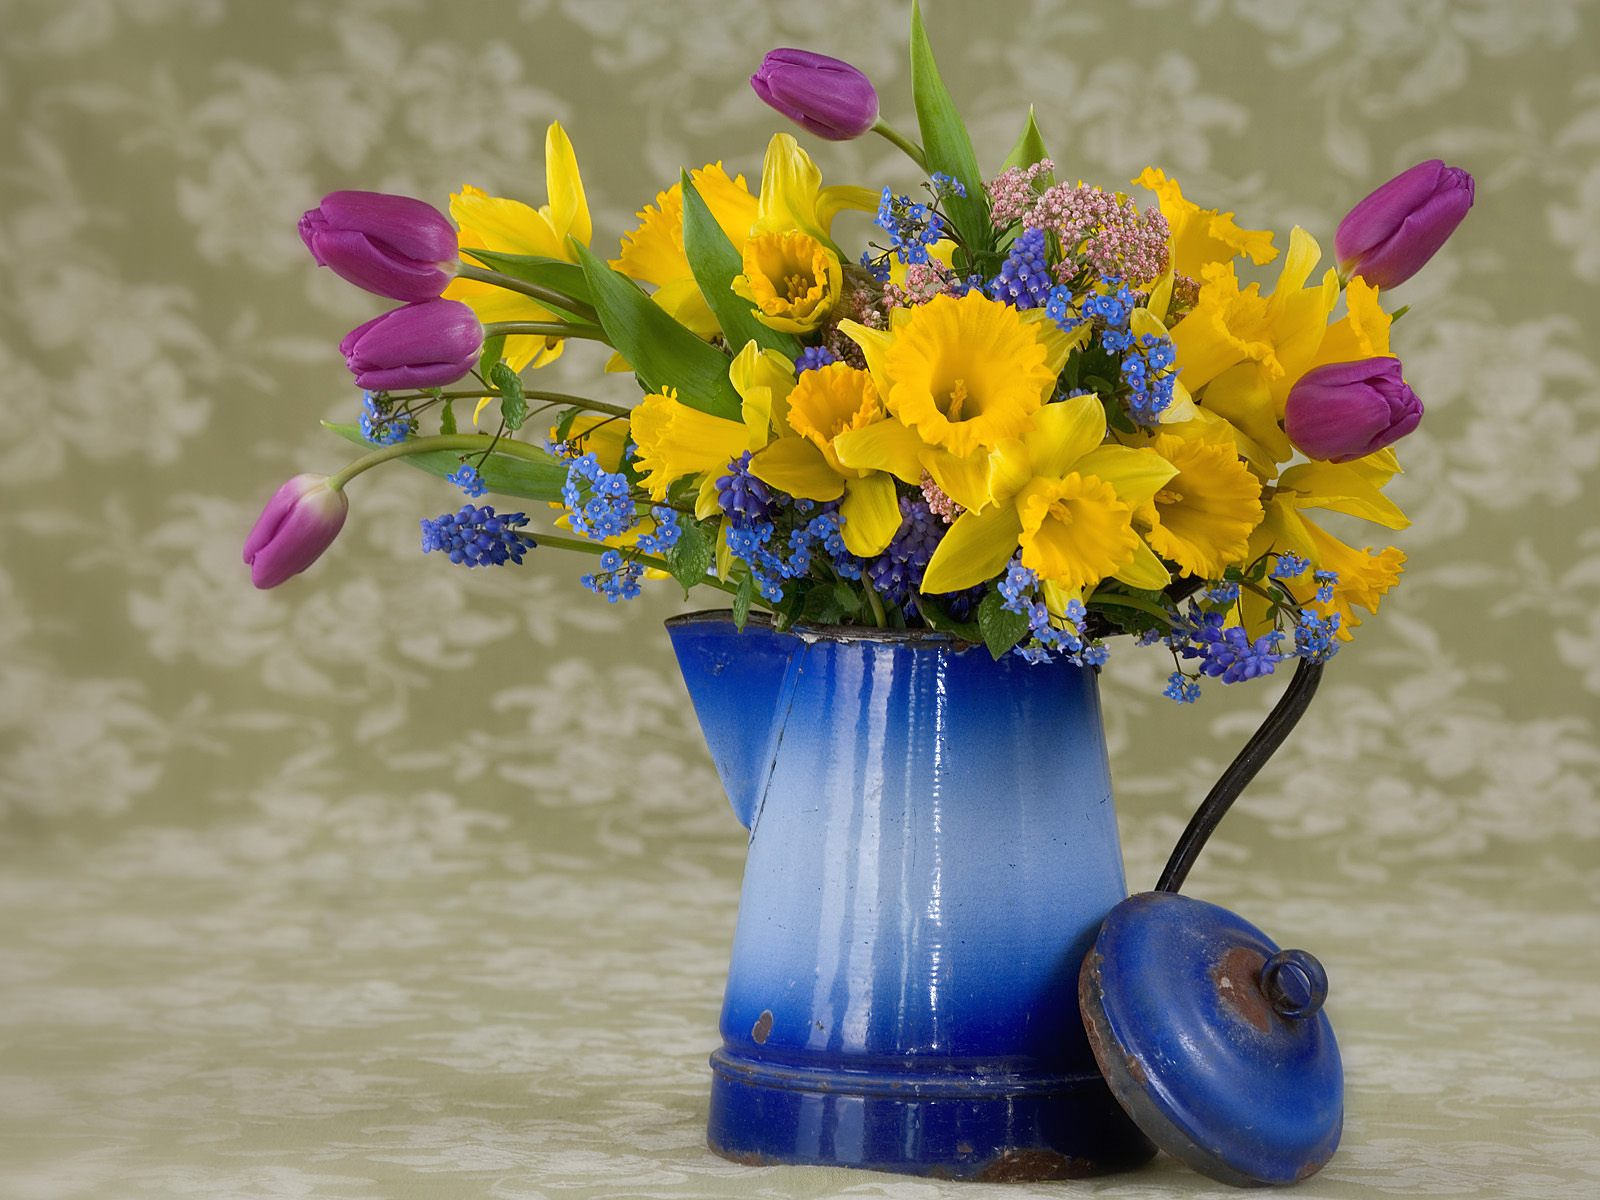 Spring Flowers Puter Background Flowers Healthy